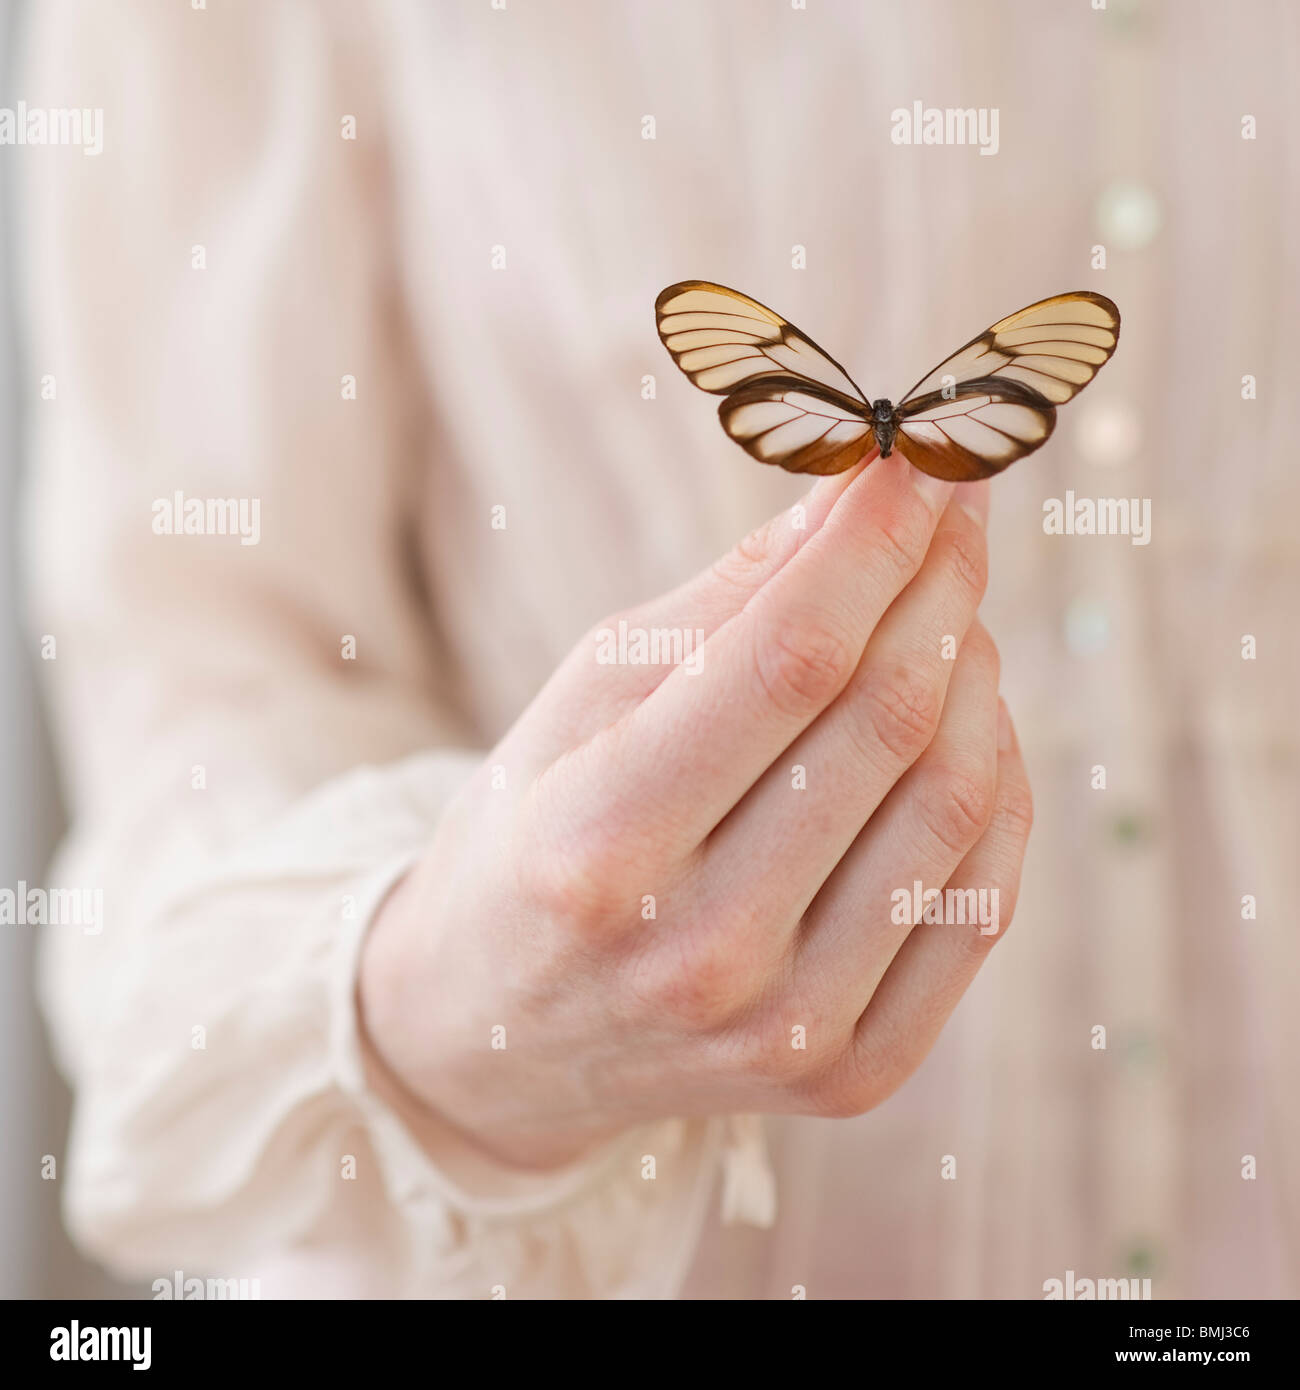 Hand holding butterfly - Stock Image